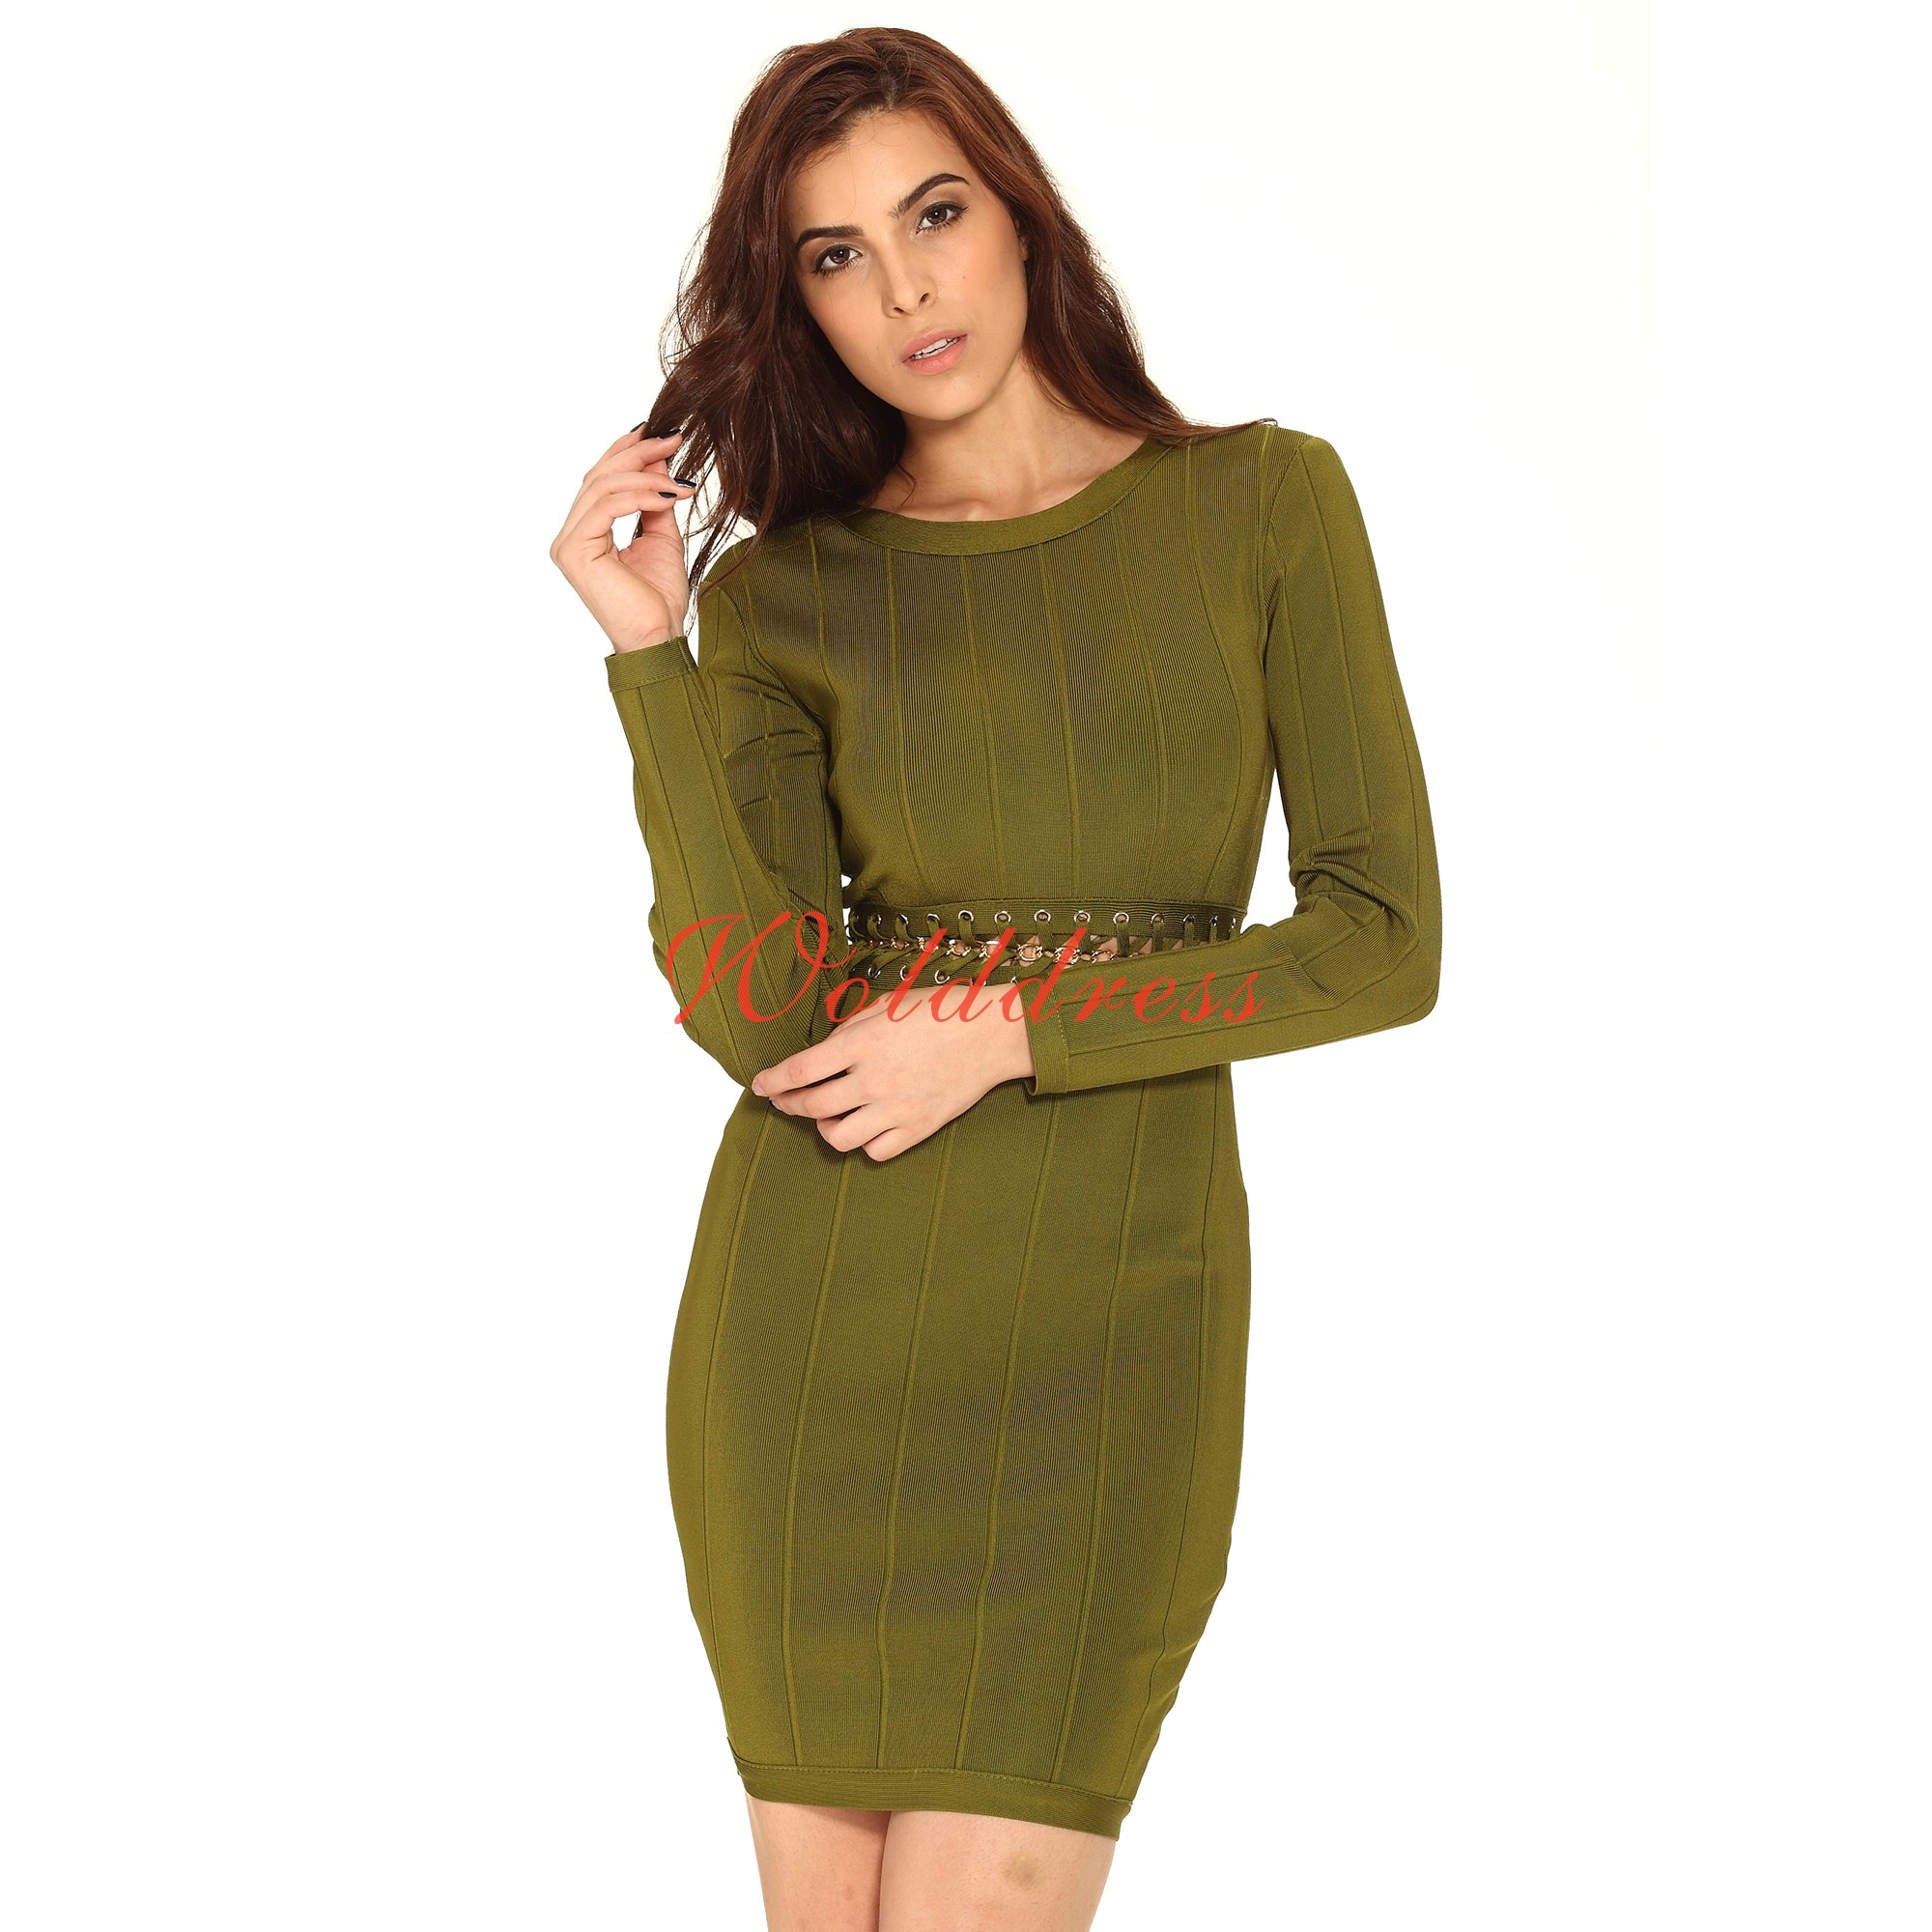 Fashion Round Neck Longsleeve Mini Green Cut Out Metal Crochet Bandage Dress HT1590-Green